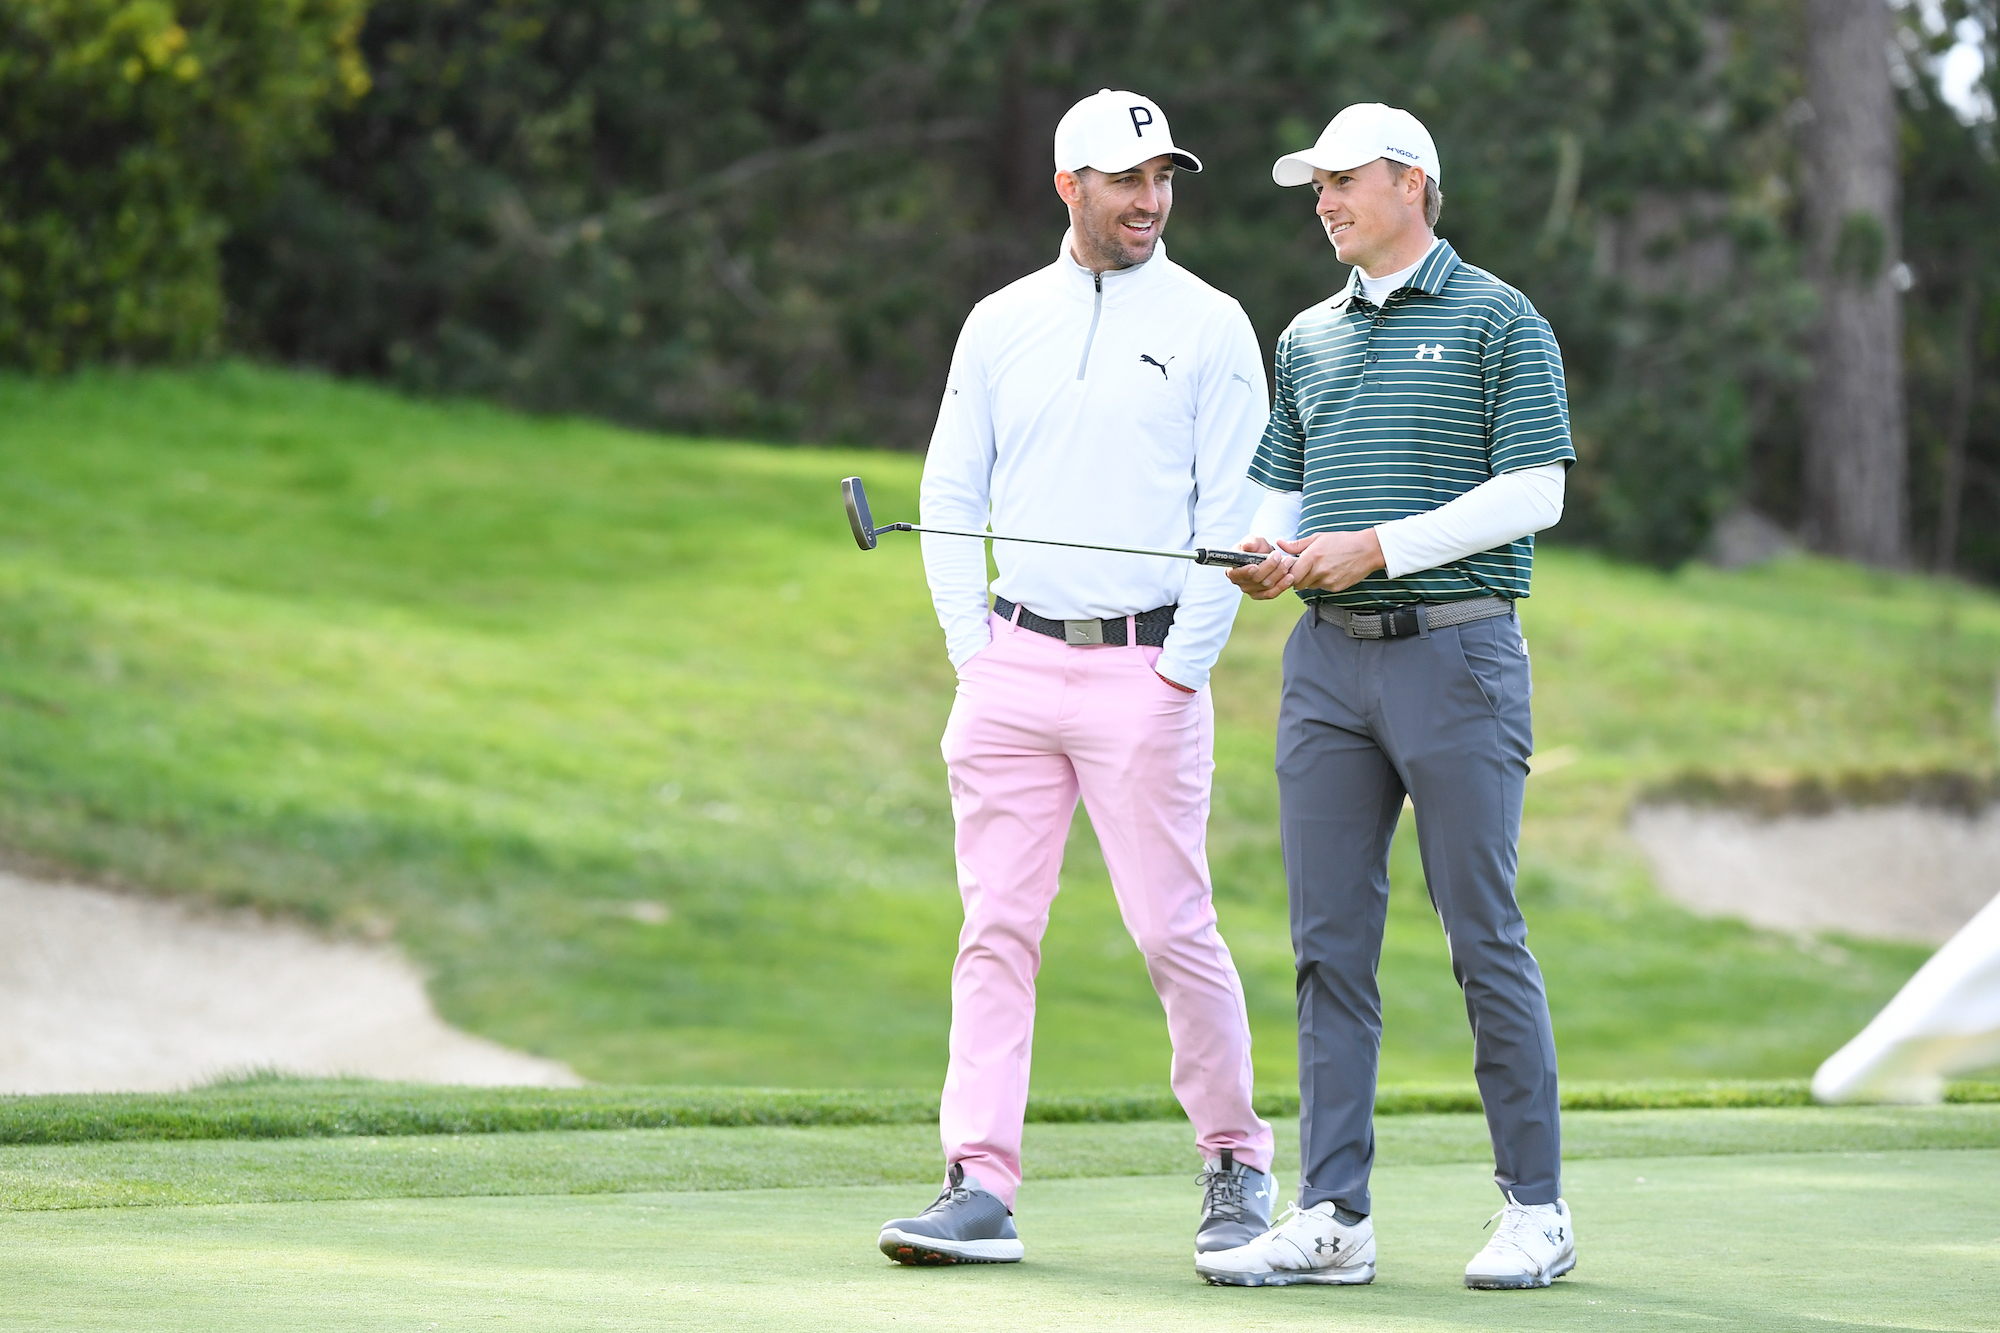 2019 AT&T Pebble Beach Pro-Am: Round 1 - Jordan and Jake Owen Laugh on the 18th Green